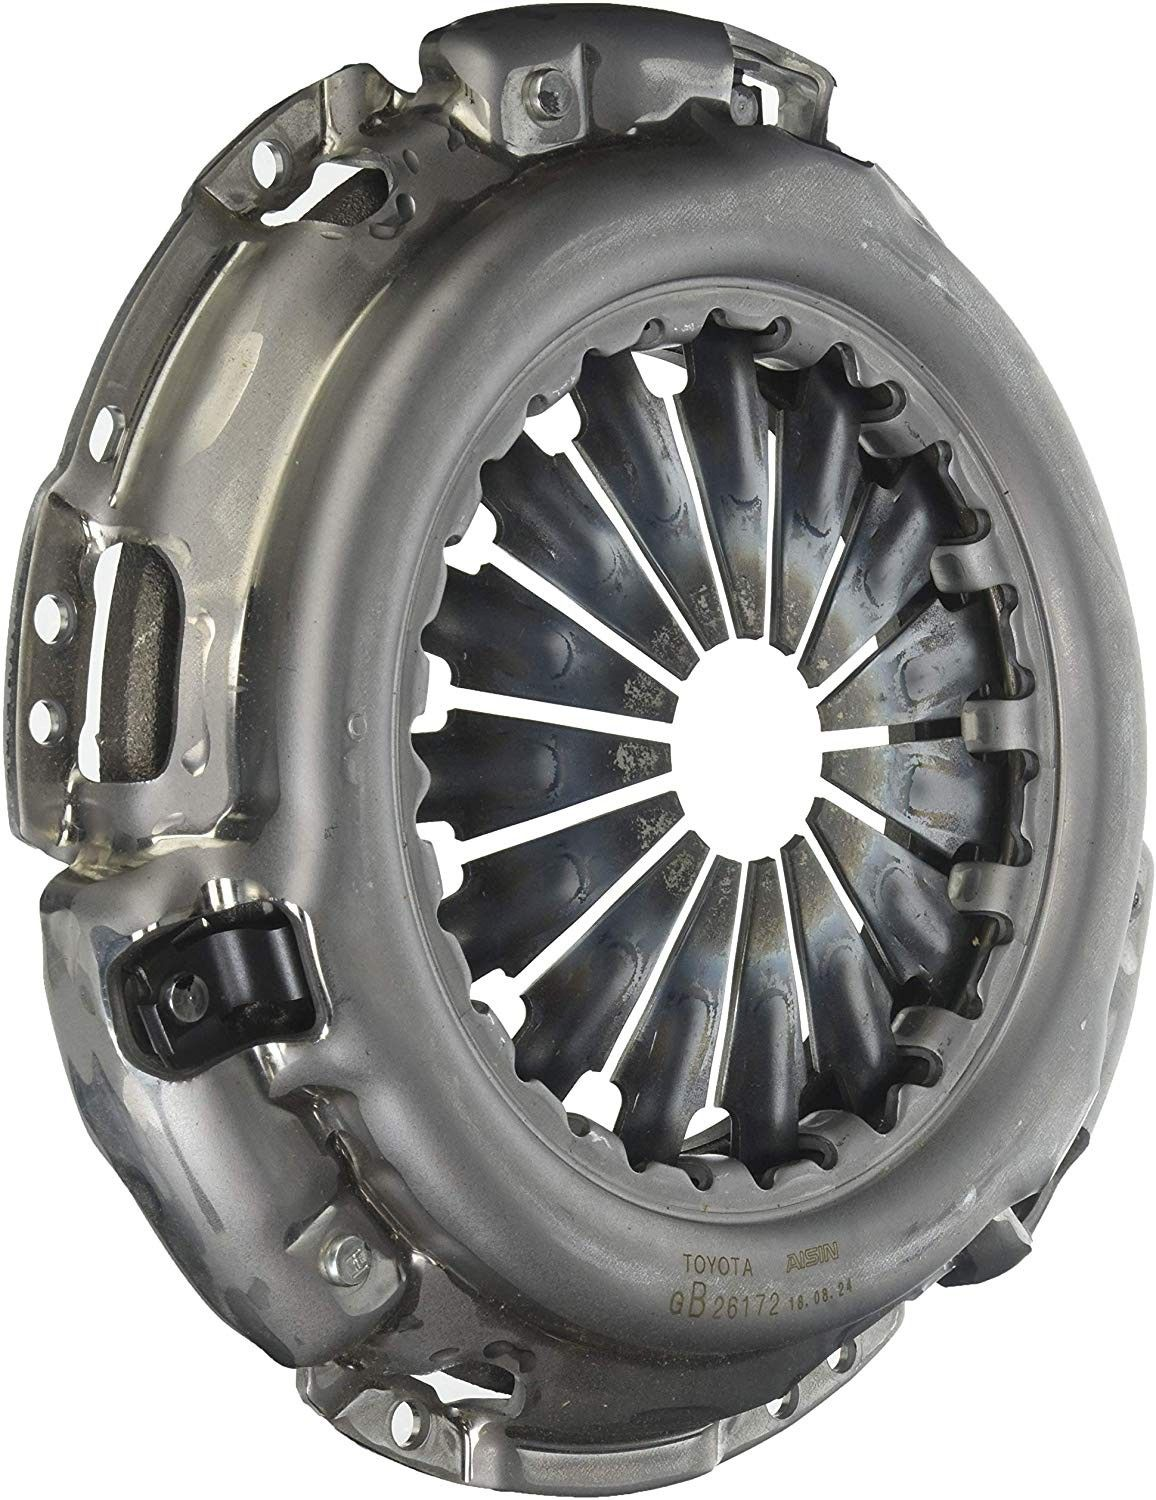 Luk Clutch Pressure Plate For Ashok Leyland Iveco 709 Cargo Model 3.25 mm Thickness 310 - 1310292100